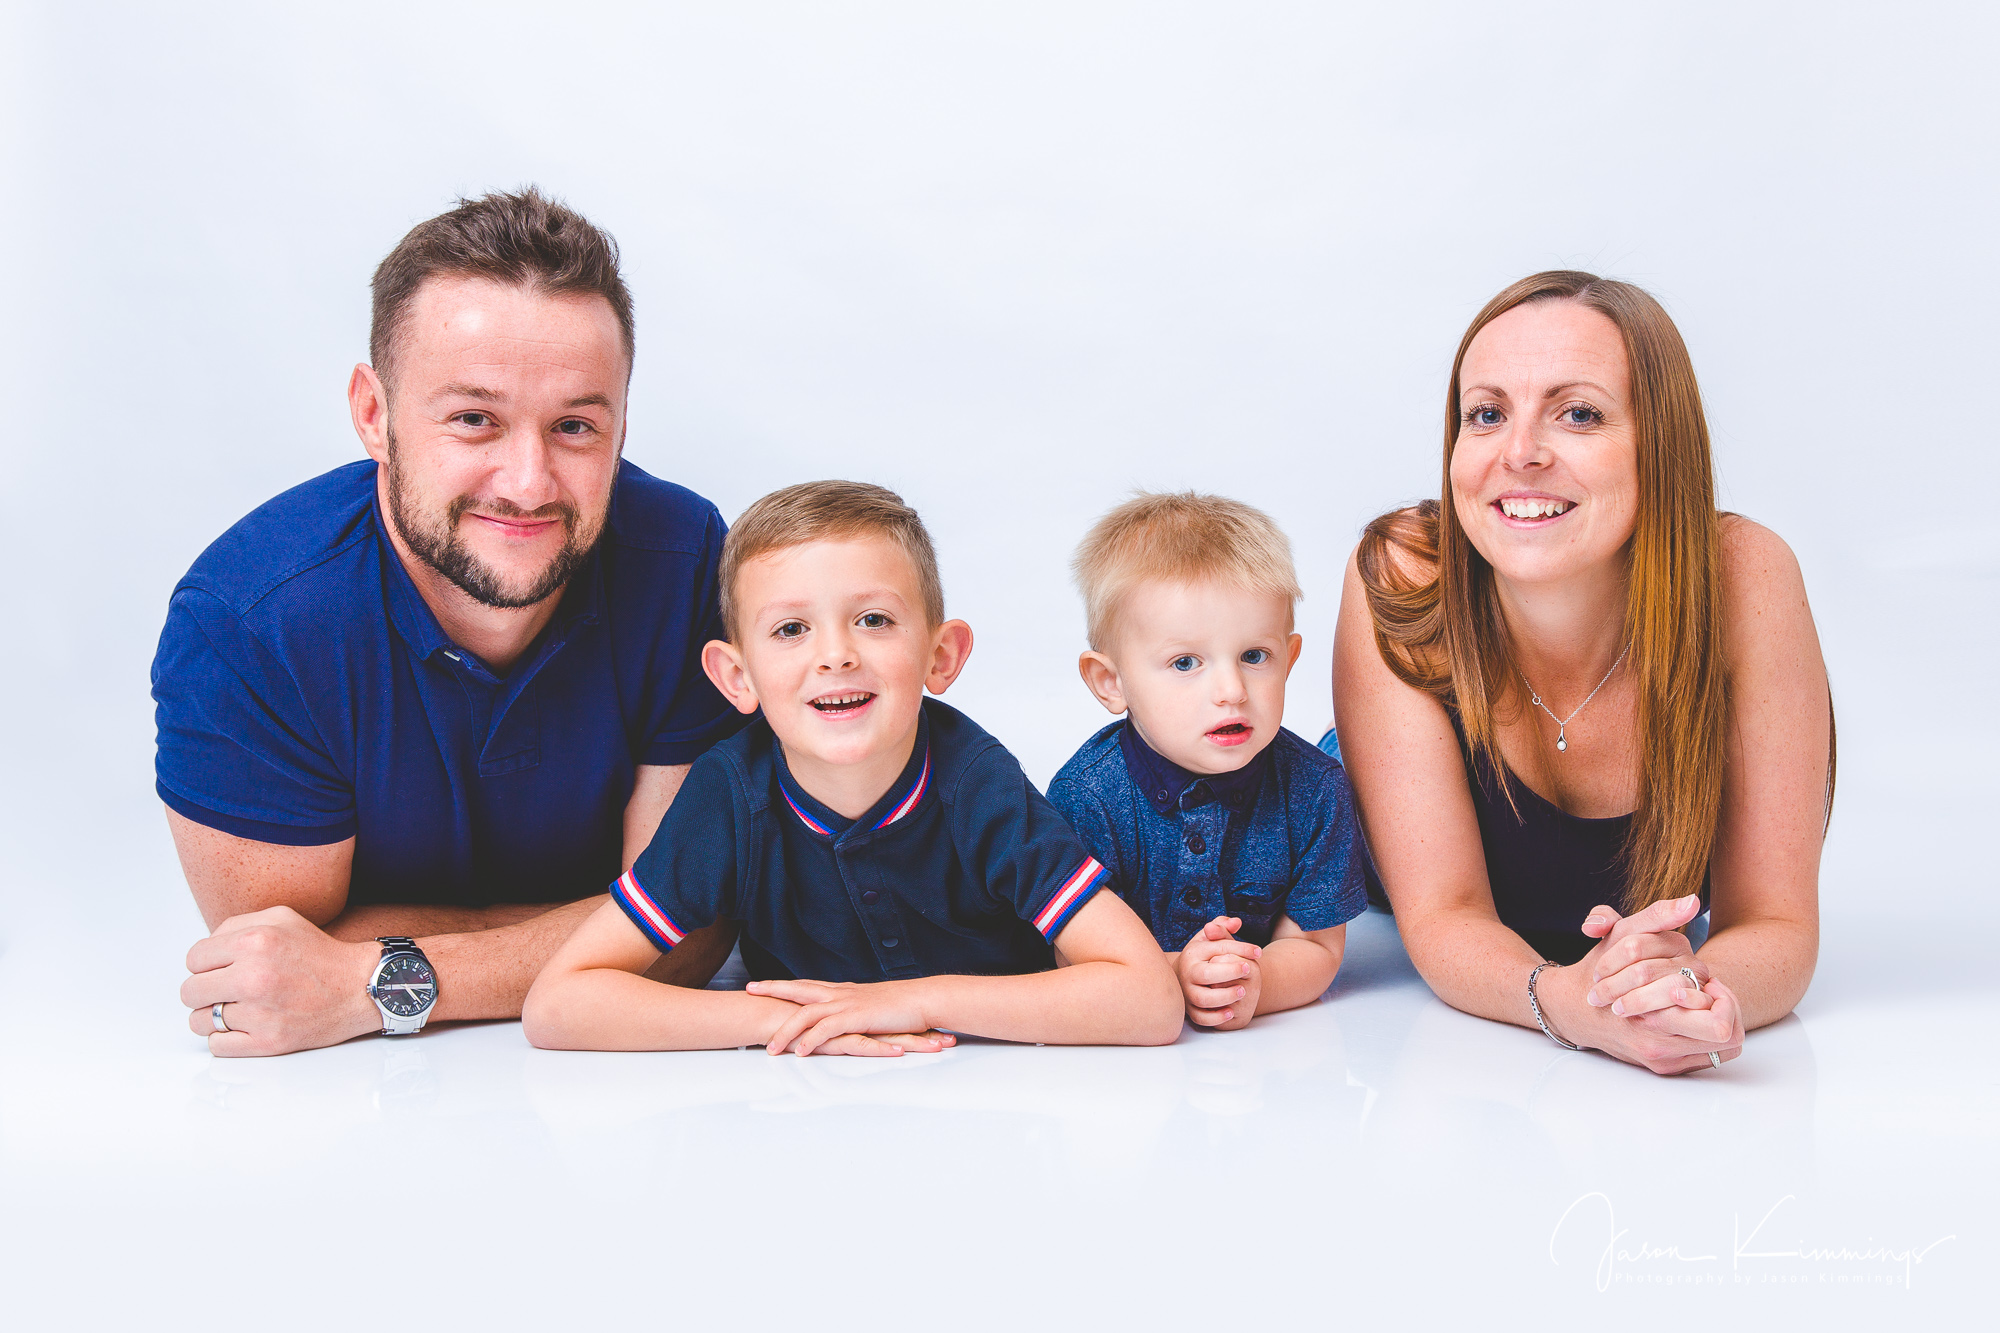 family-studio-photography-edinburgh-glasgow-west-lothian-1.jpg